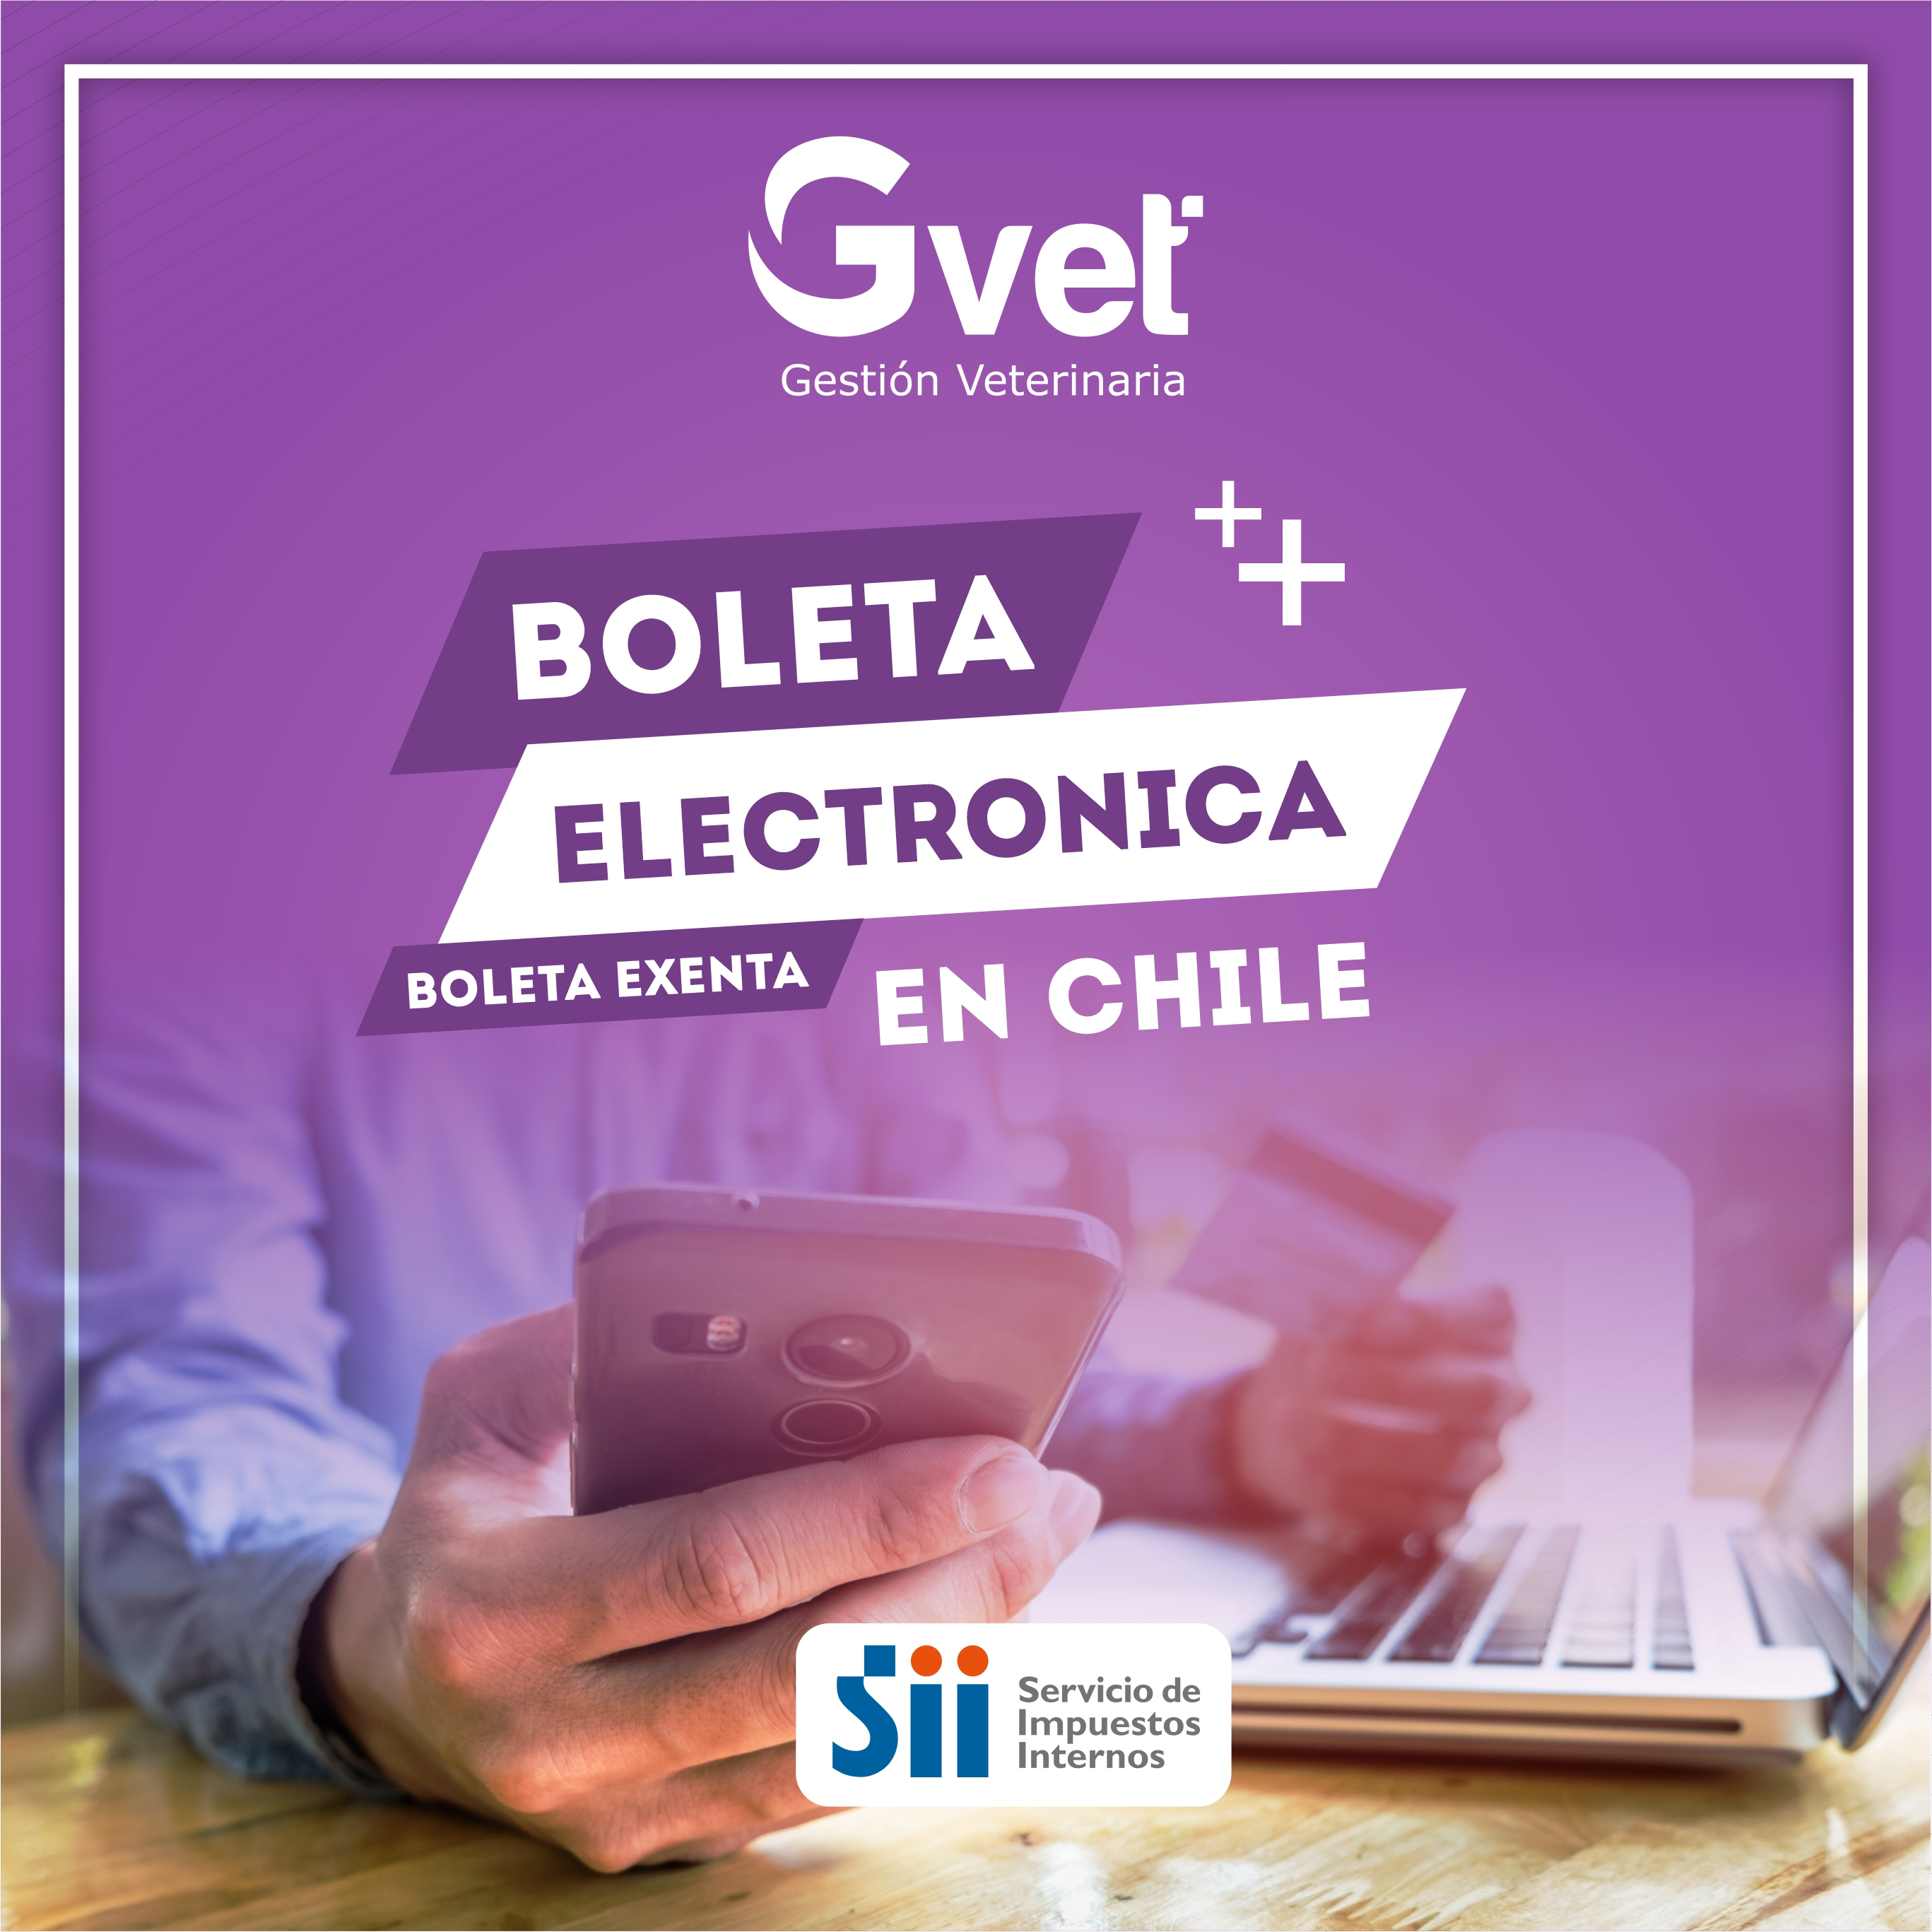 GVET Software Veterinario